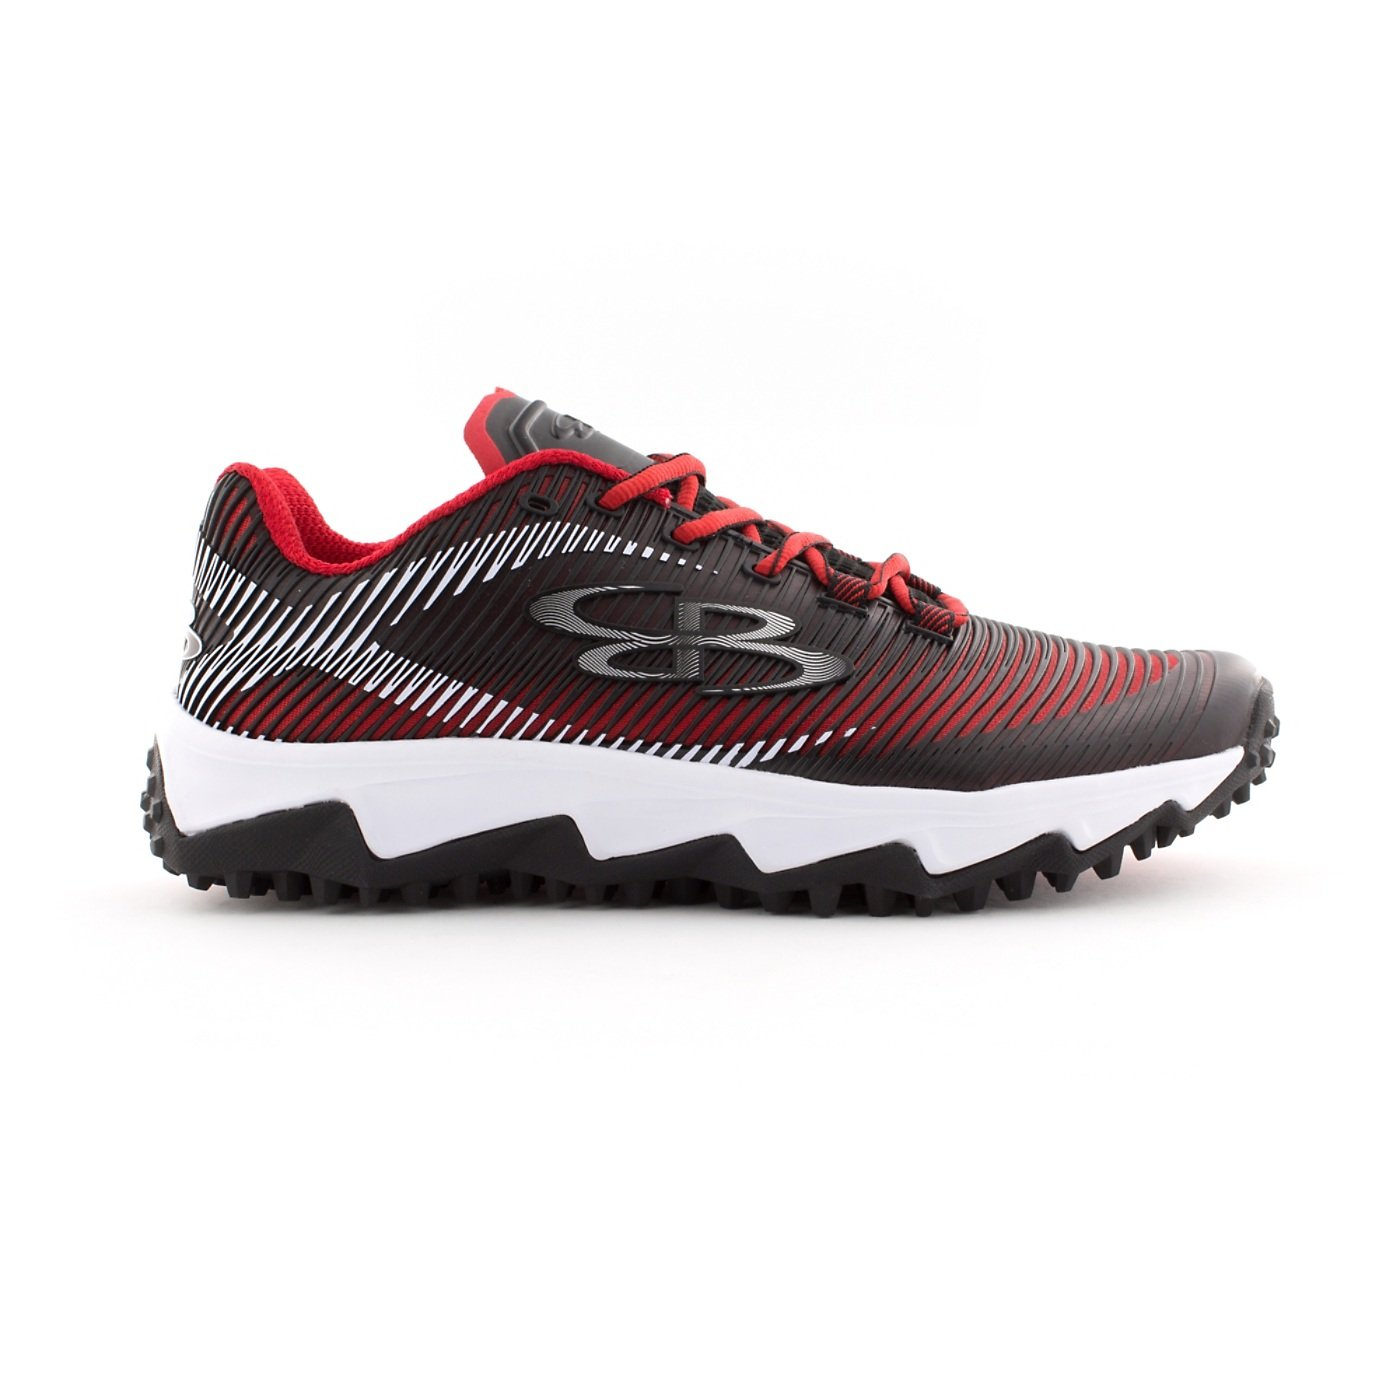 Boombah Men's Aftershock DPS Turf Shoes - 18 Color Options - Multiple Sizes B0767QMWTQ 8.5|Black/Red